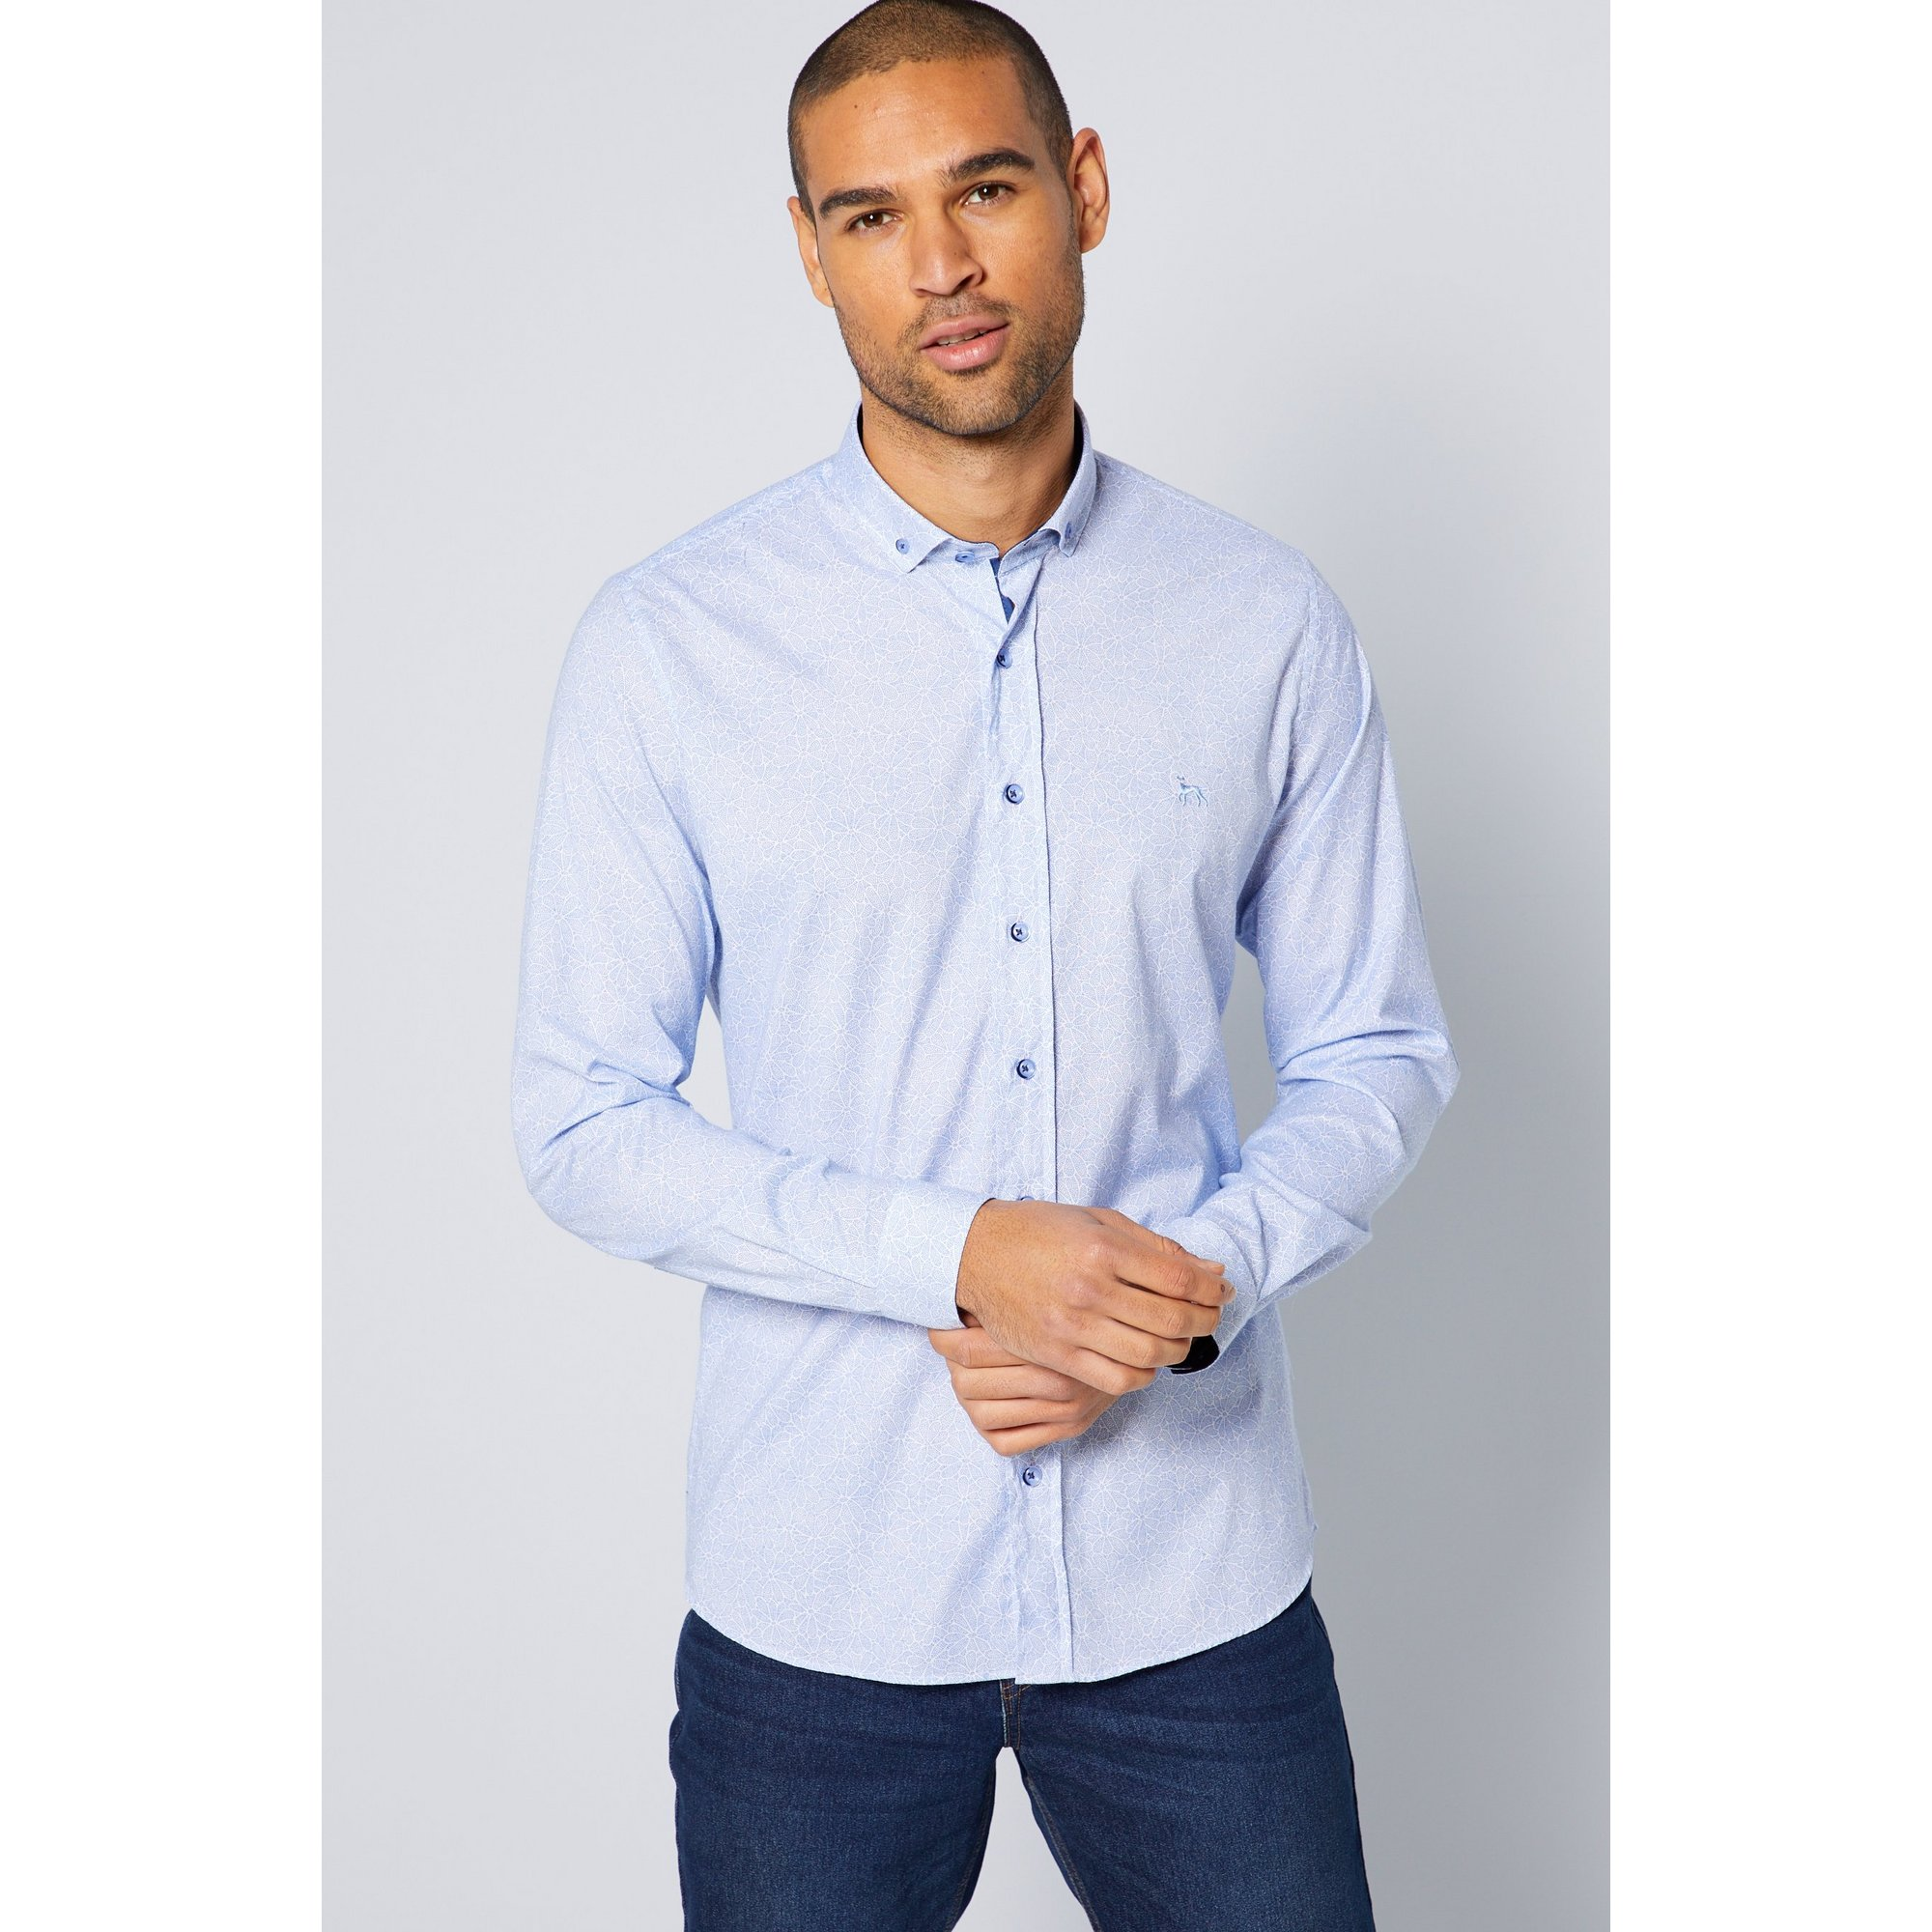 Image of Bewley and Ritch Long Sleeve Blue Patterned Shirt